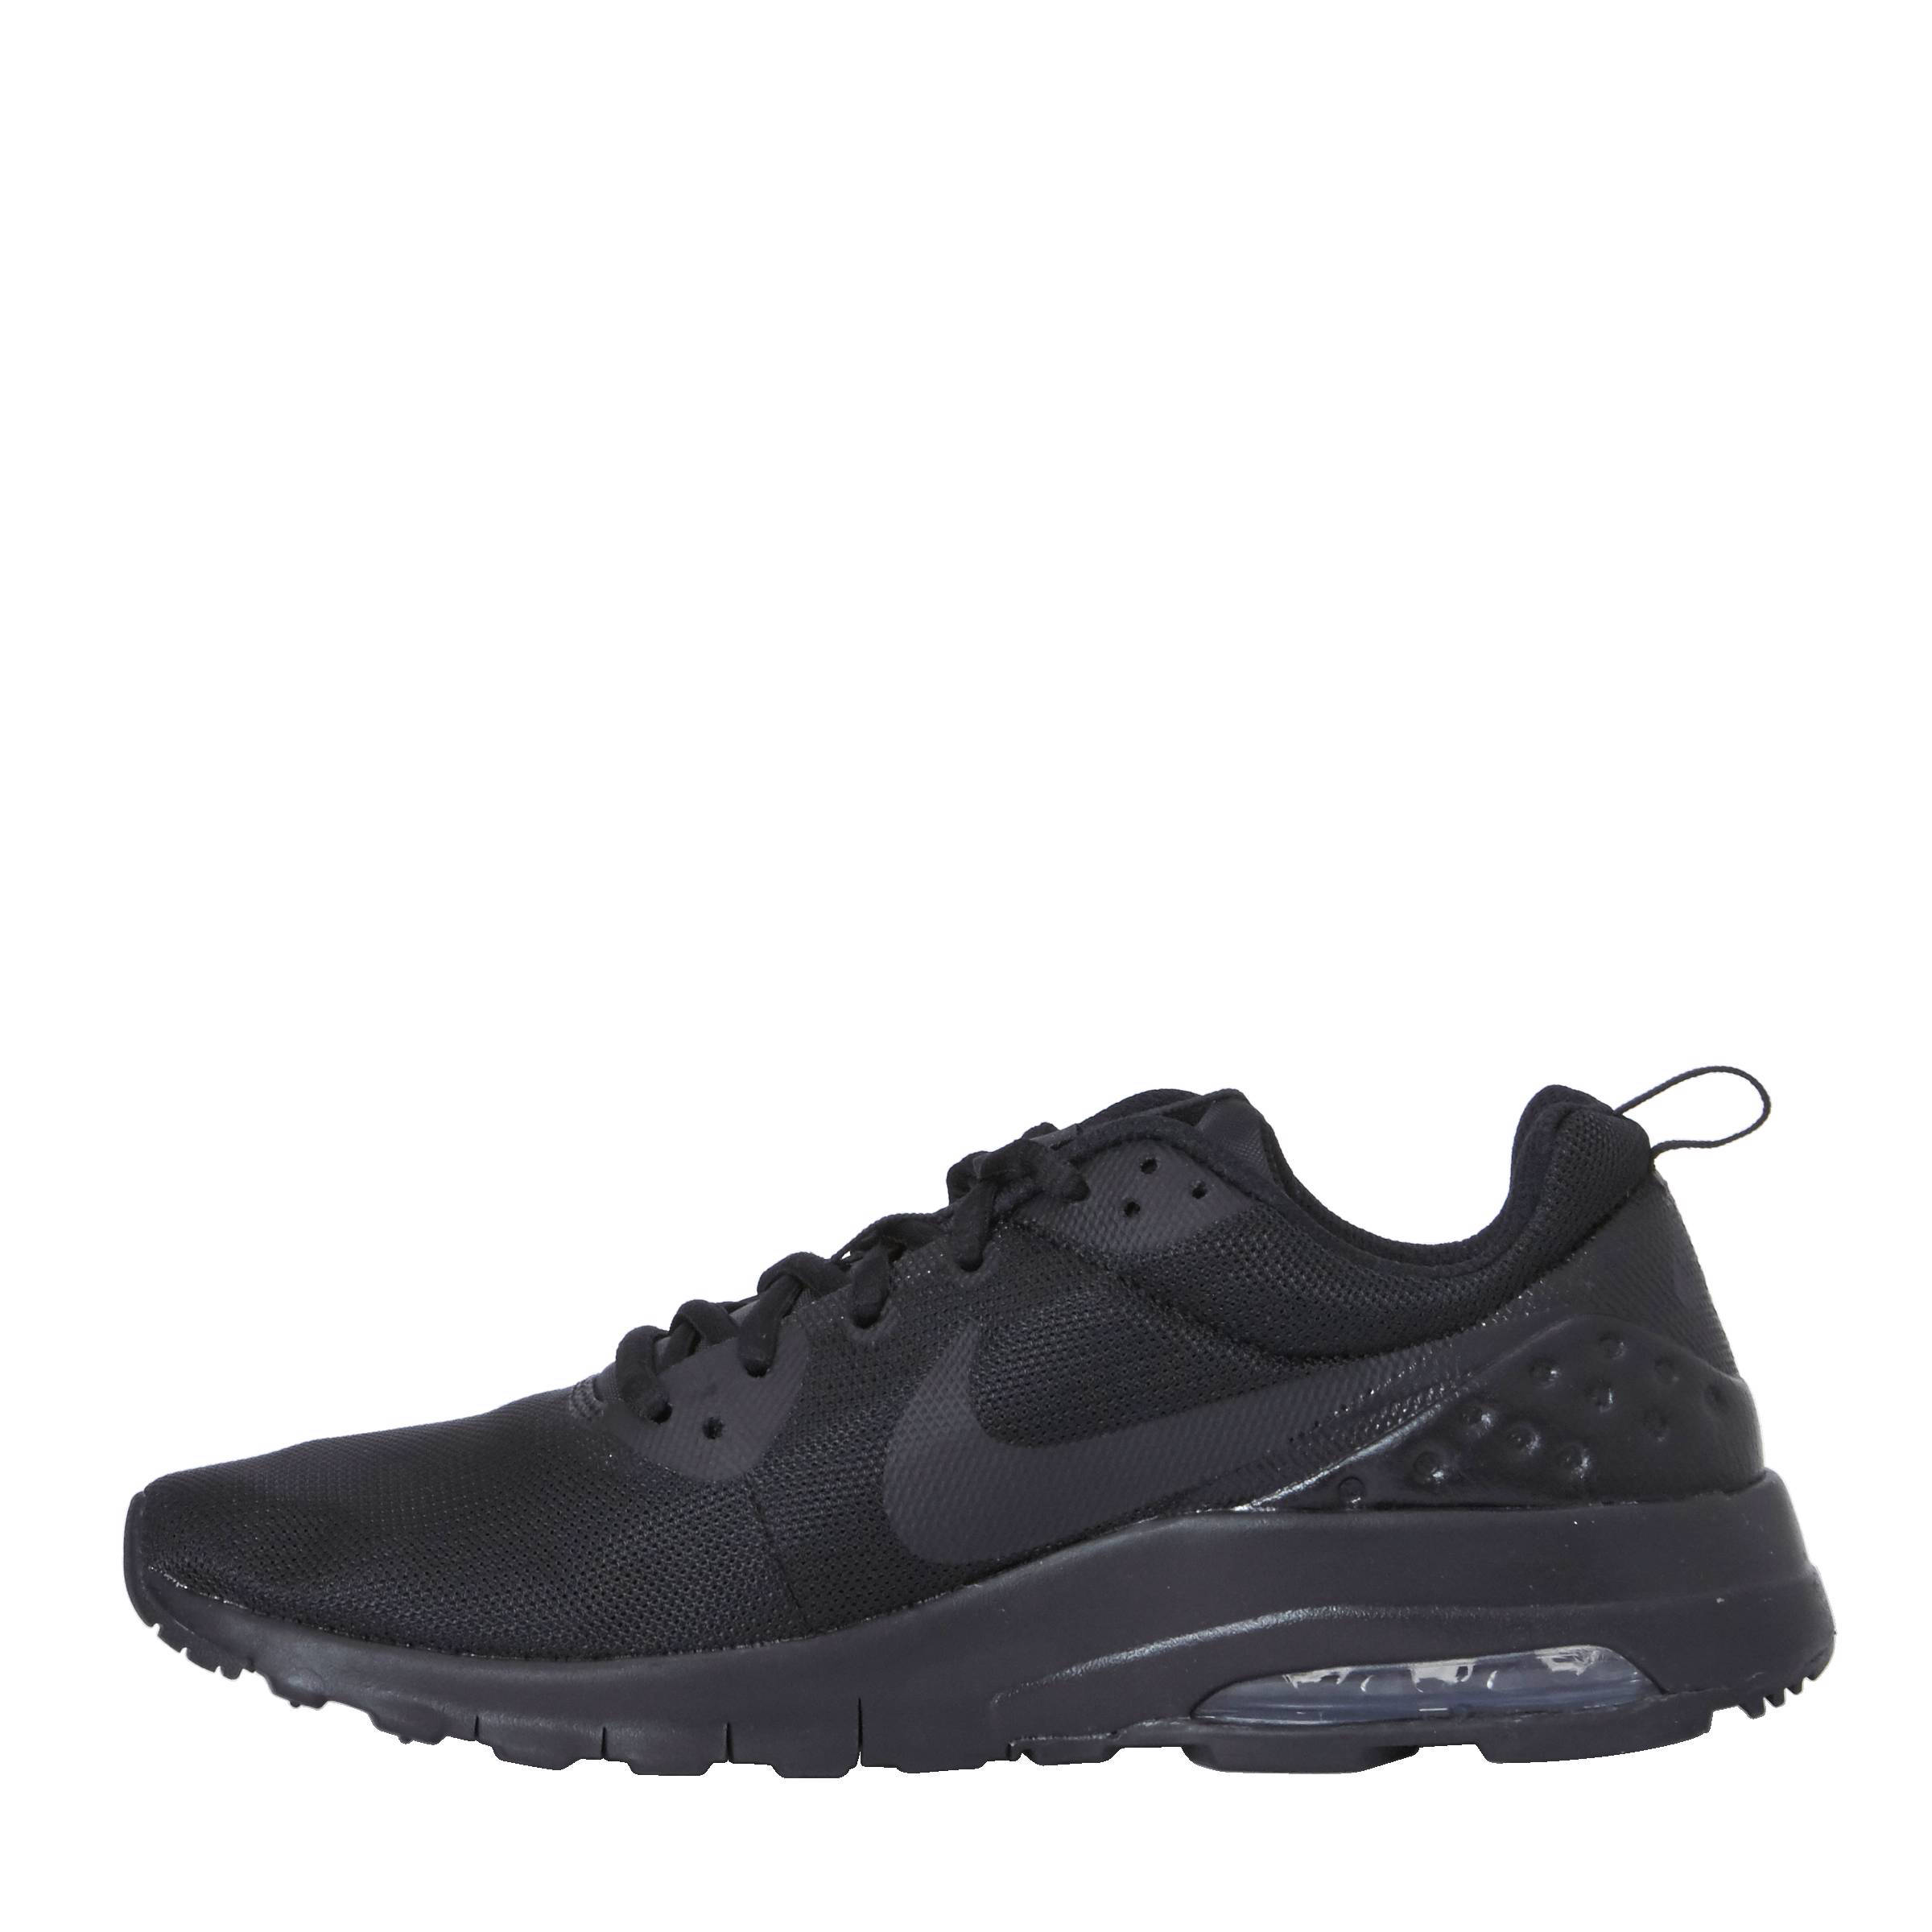 Air Max Motion LW sneakers